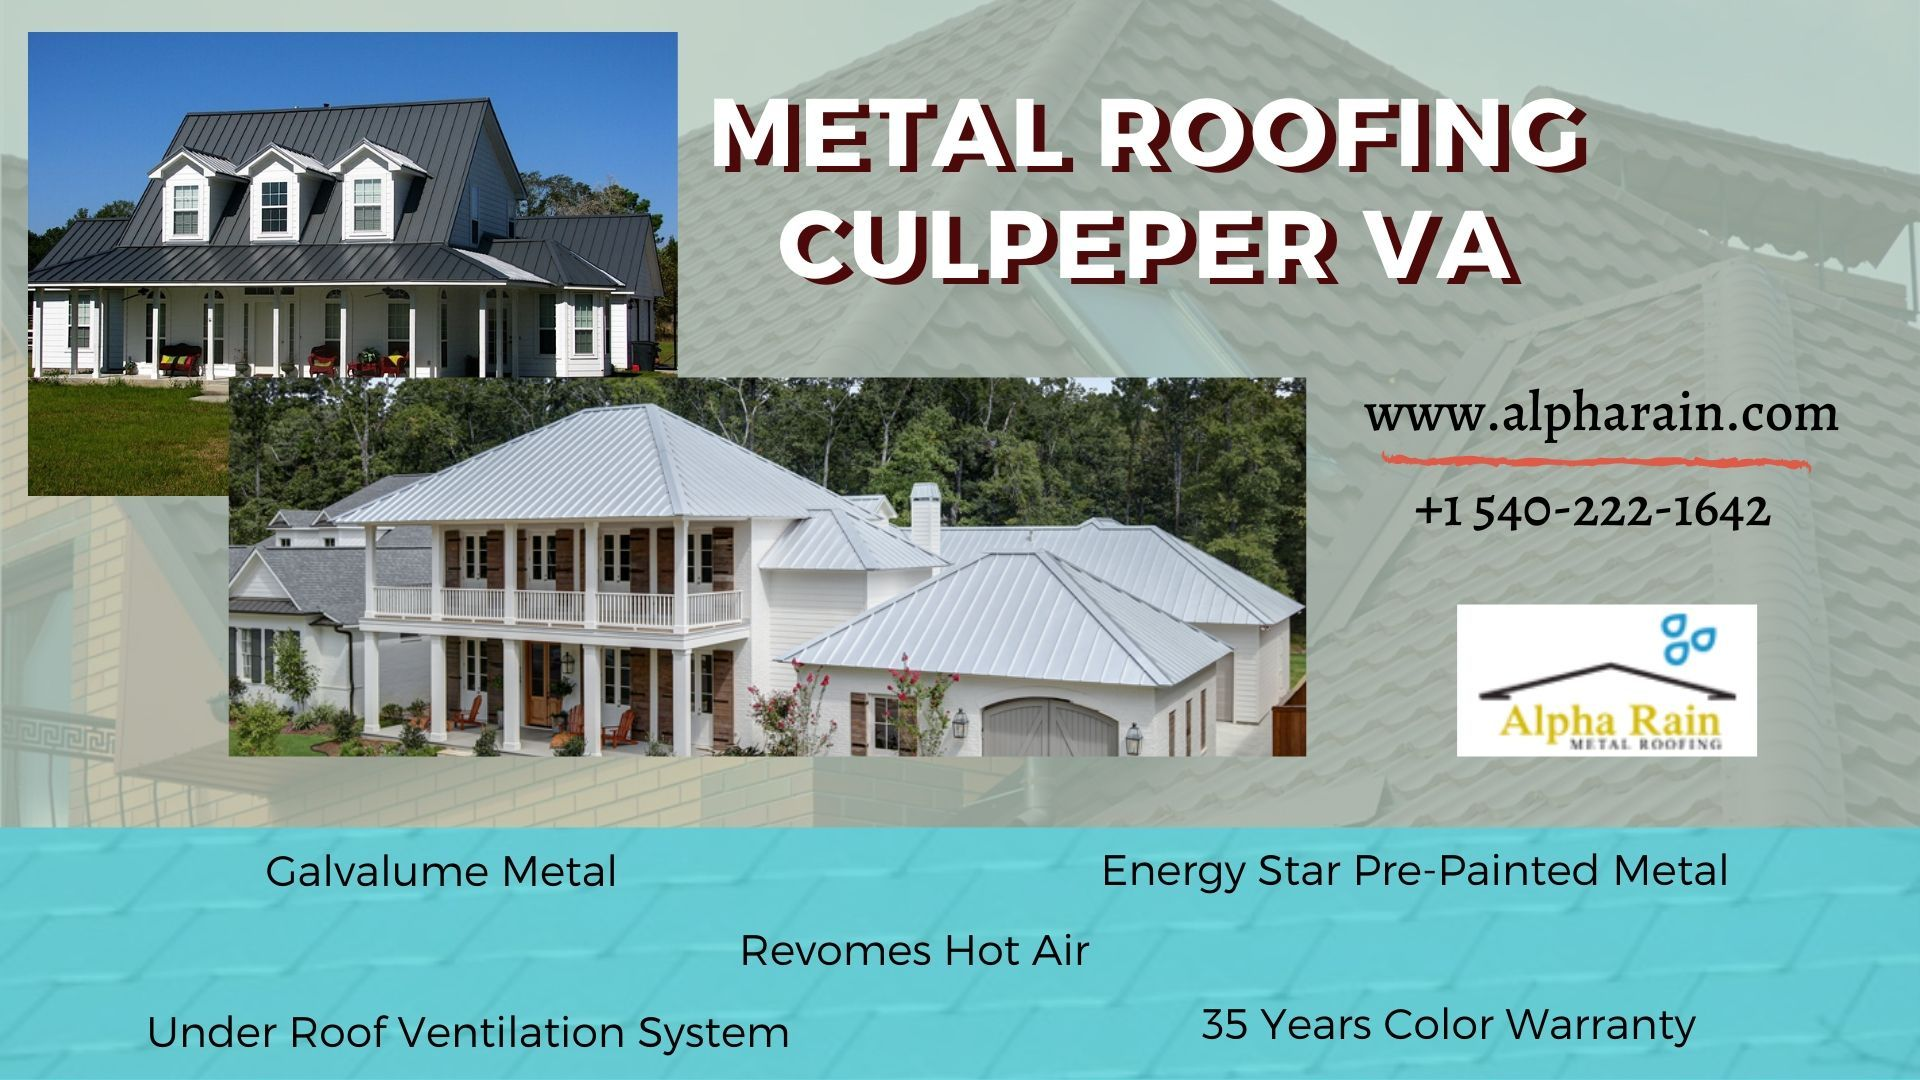 Virginia Metal Roof Specialists In 2020 Ventilation System Metal Roof Roof